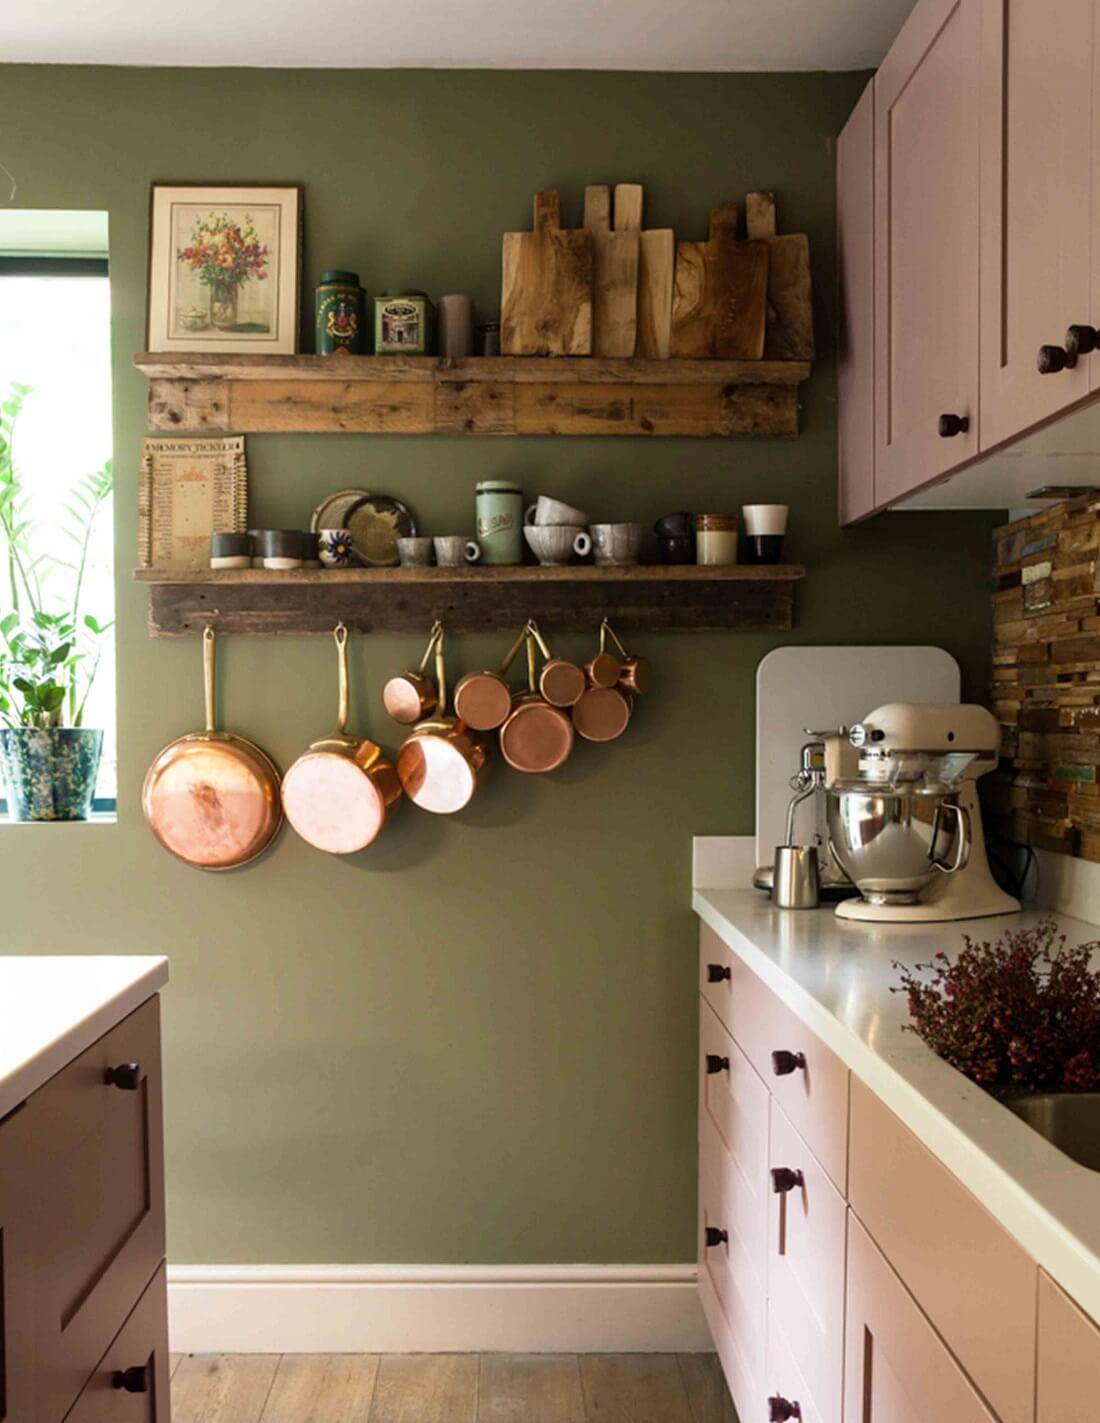 A Vintage Looking Home Decorated in Dusty Colors